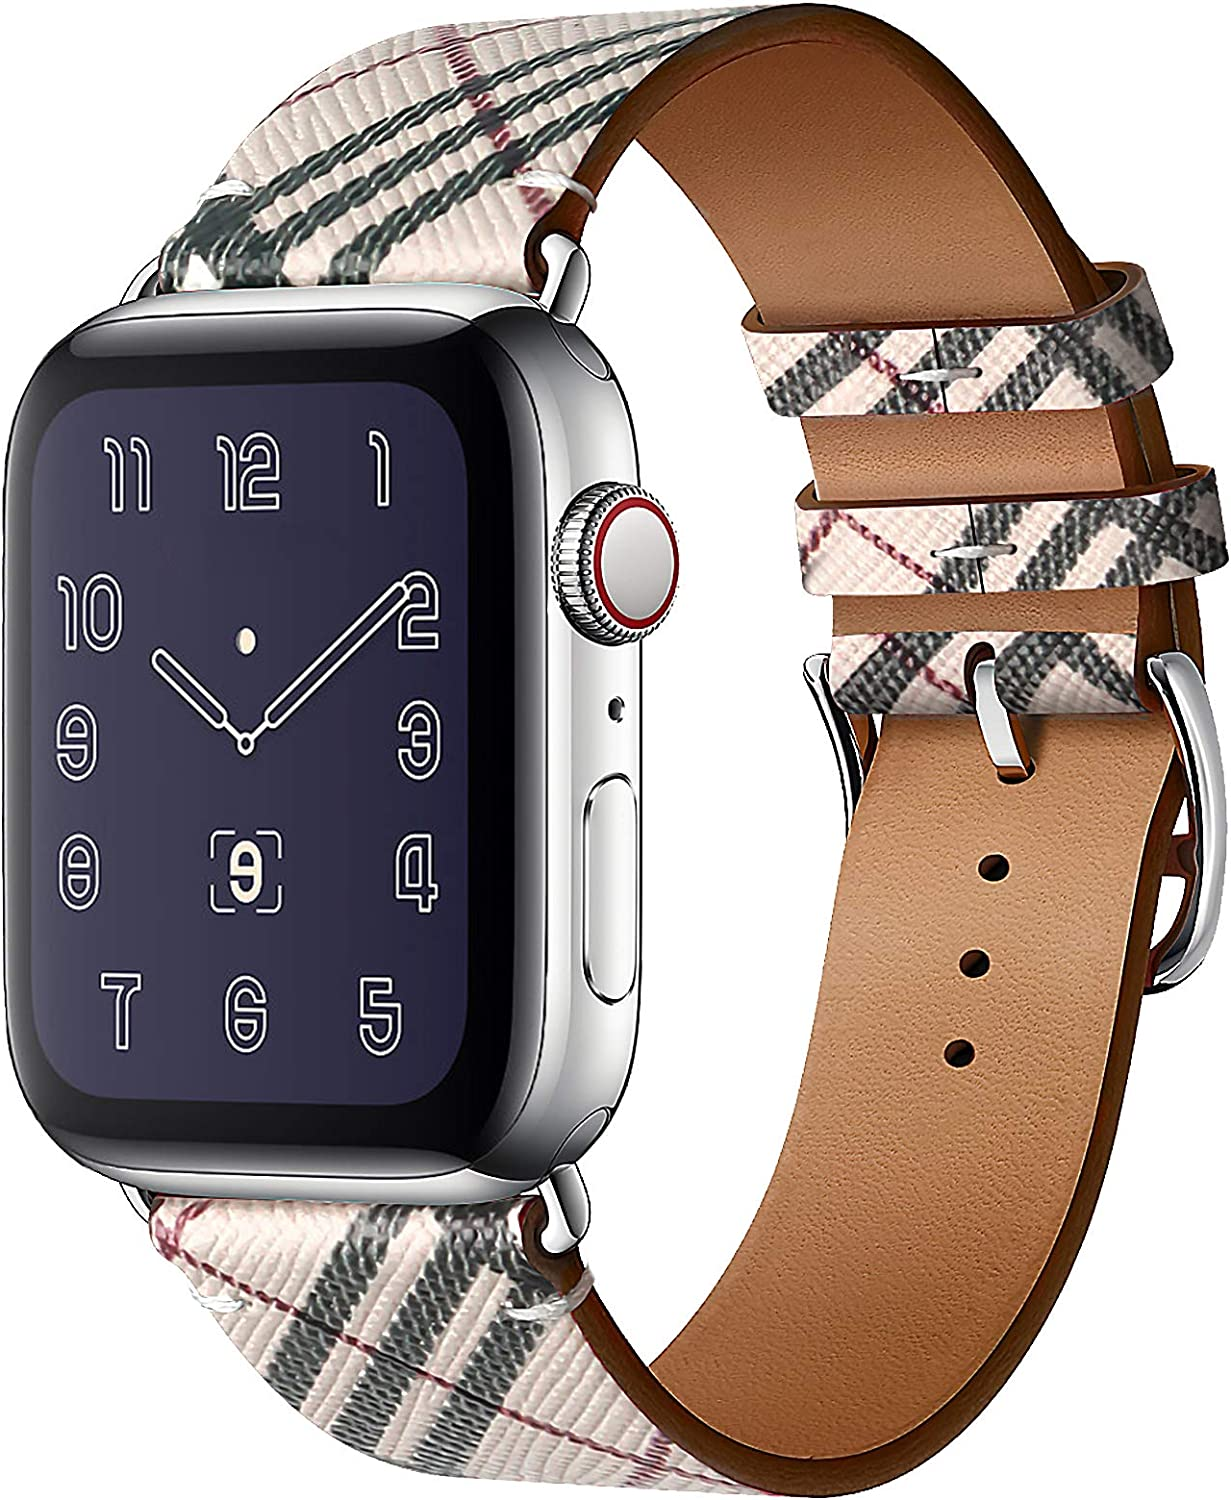 Panrock Stretchy Watch Band Compatible with Apple Watch 38mm 40mm 42mm 44mm, Sport Elastic Adjustable Wristband for Women Men iWatch Series 6/5/4 3/2/1/SE